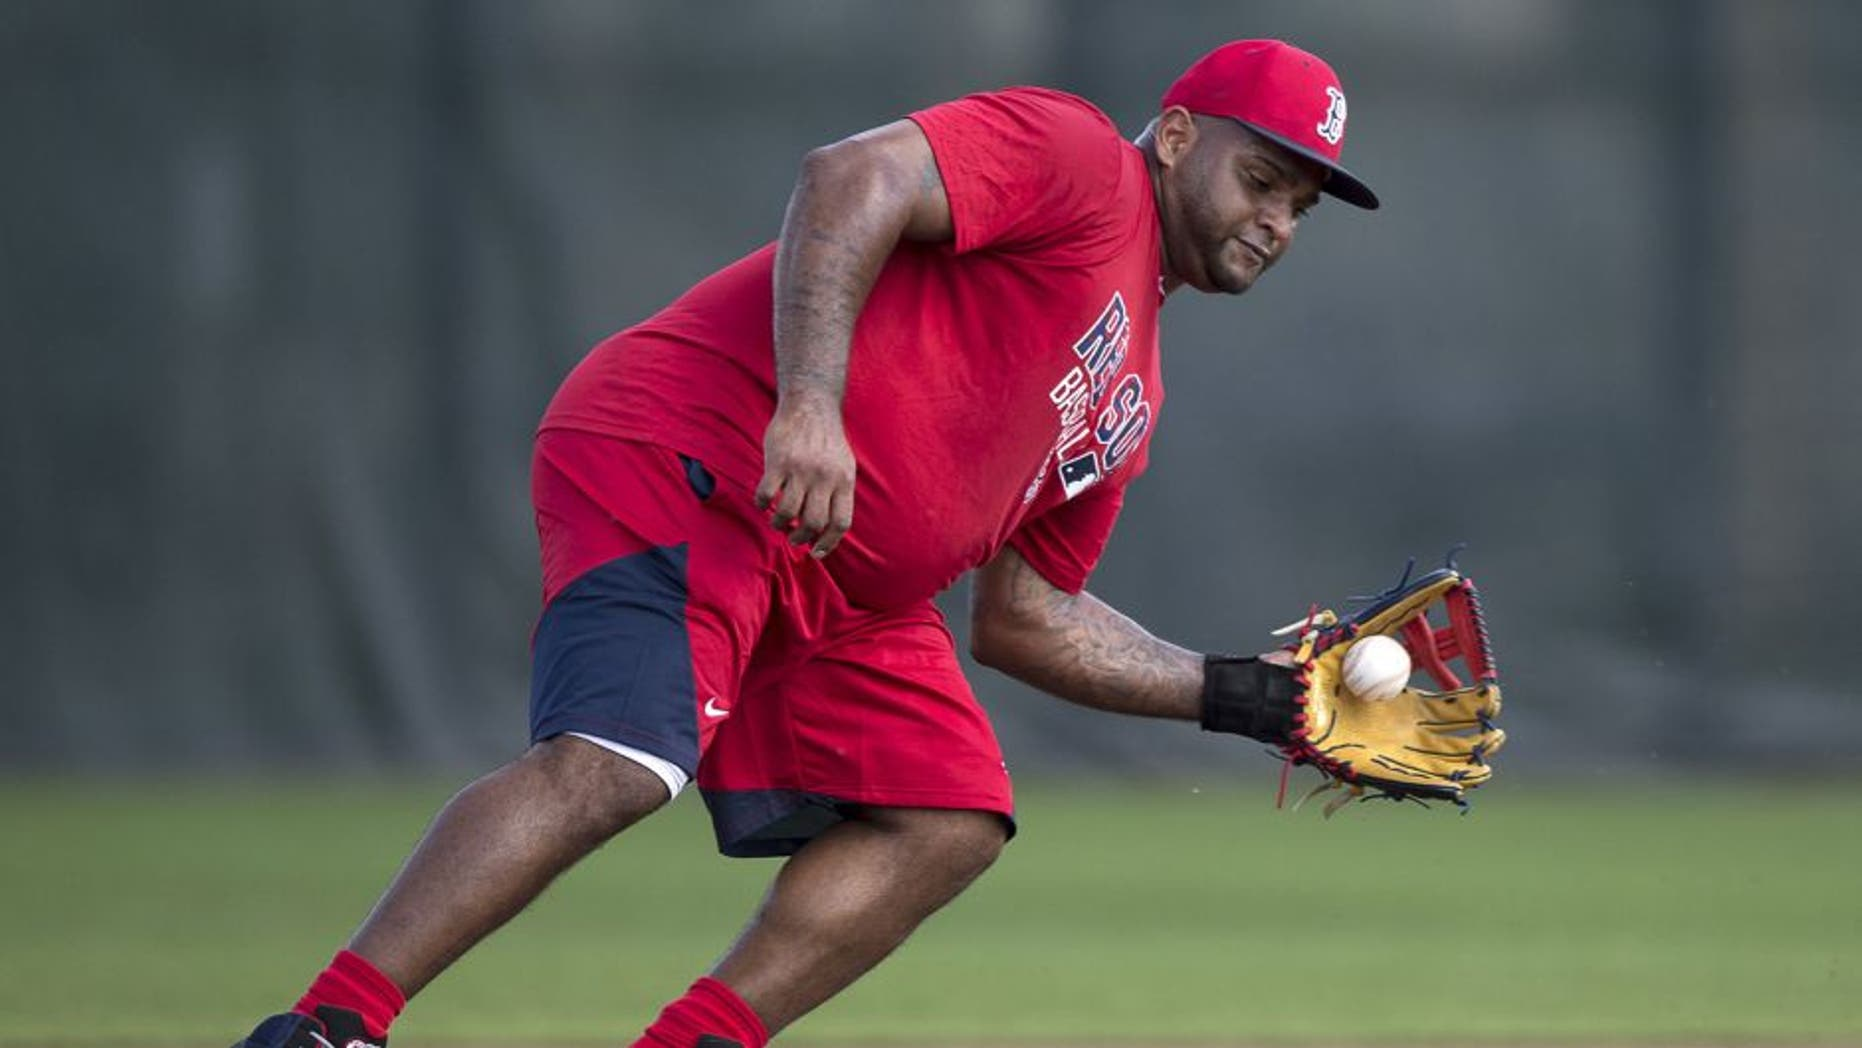 FT. MYERS, FL - FEBRUARY 21: Pablo Sandoval #48 of the Boston Red Sox fields a ground ball from third base on February 21, 2016 at Fenway South in Fort Myers, Florida . (Photo by Michael Ivins/Boston Red Sox/Getty Images)